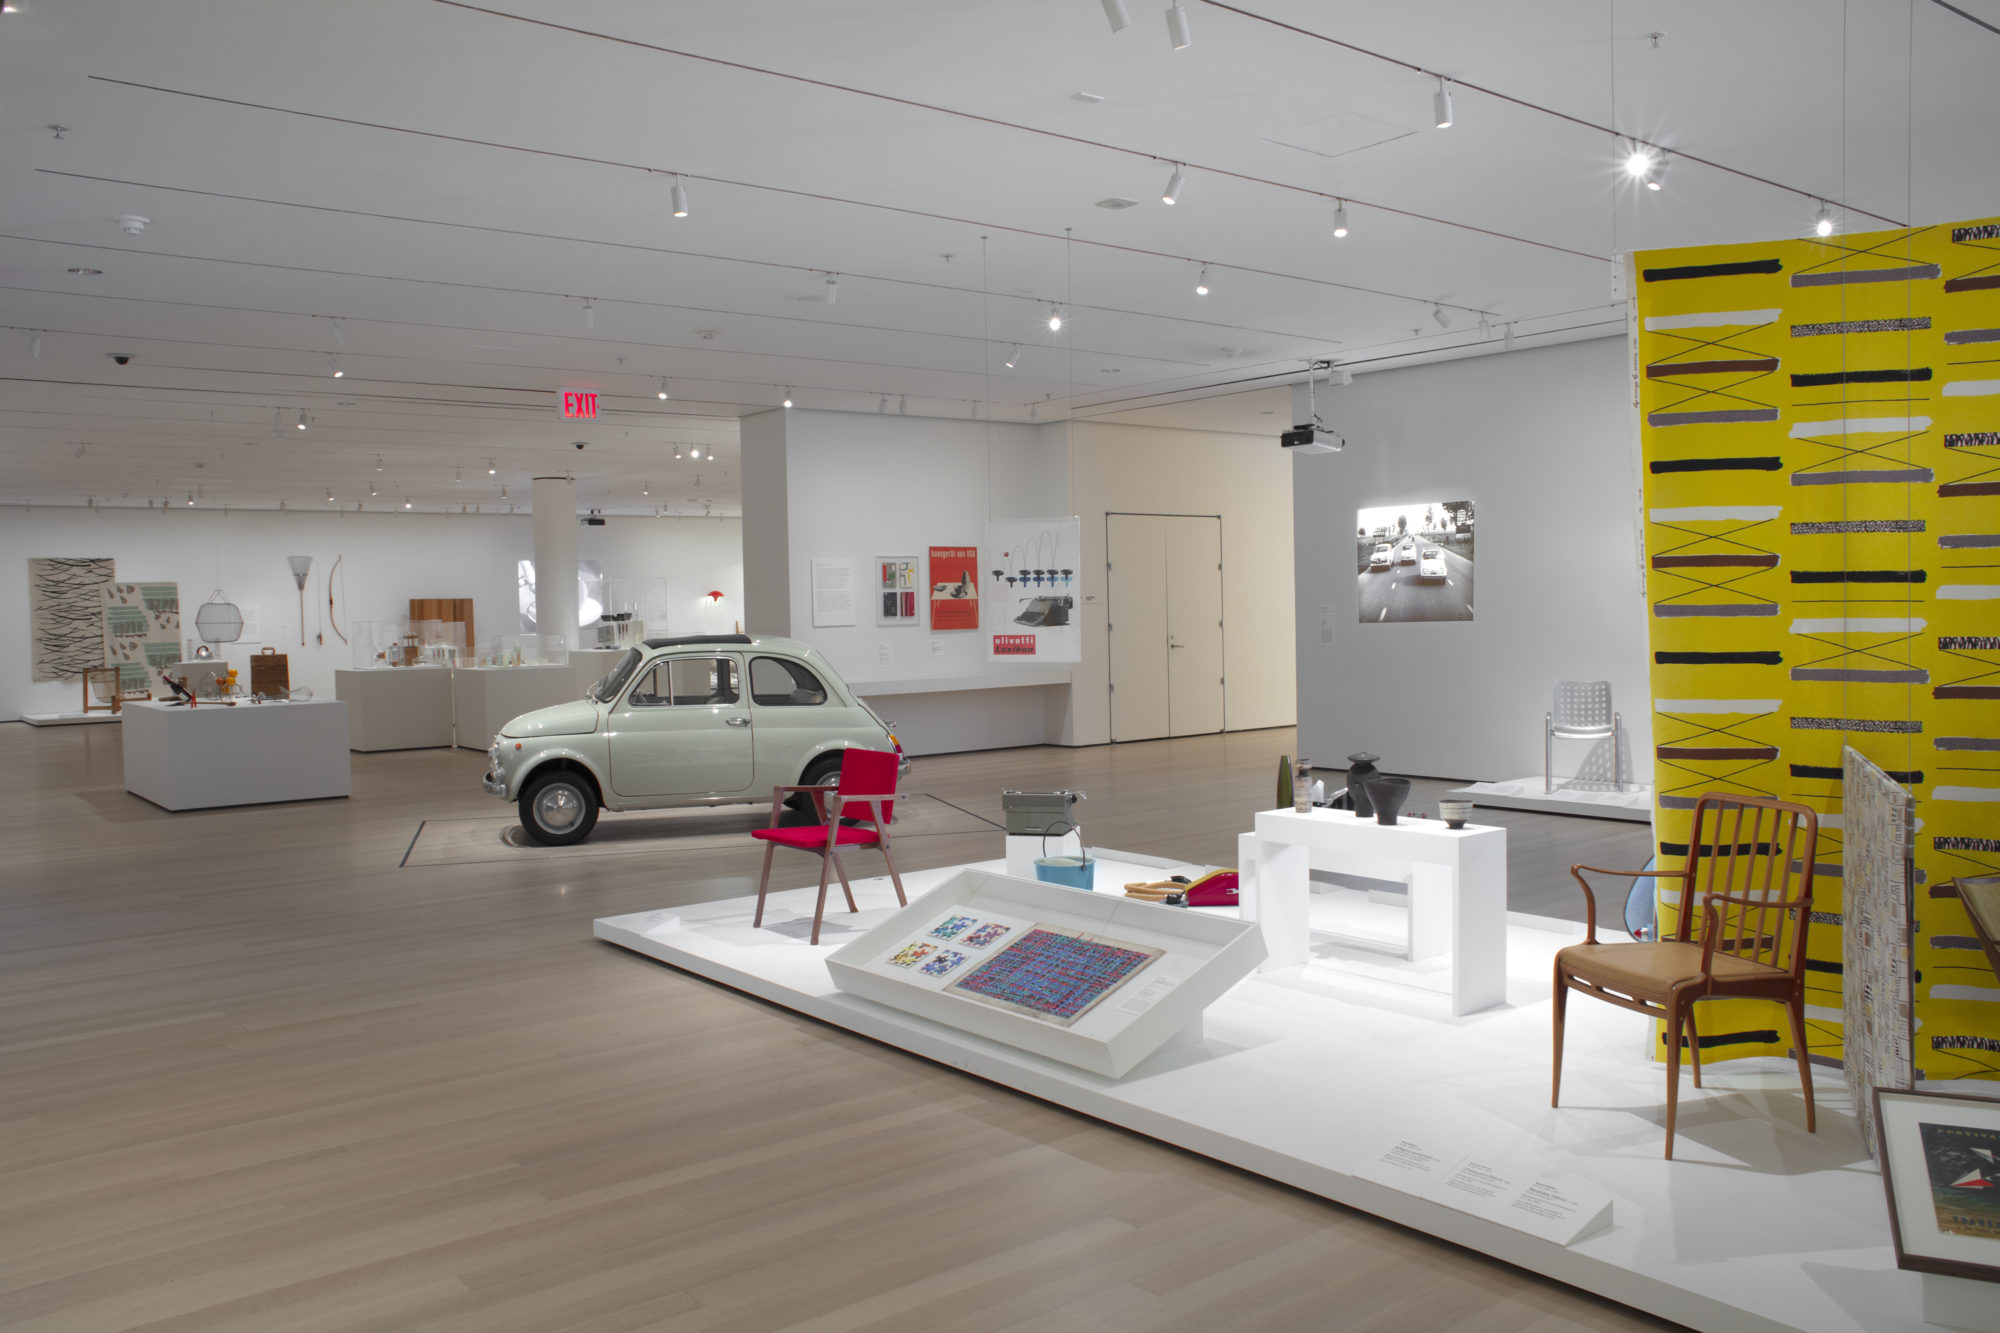 Installation view, The Value of Good Design at the MoMa